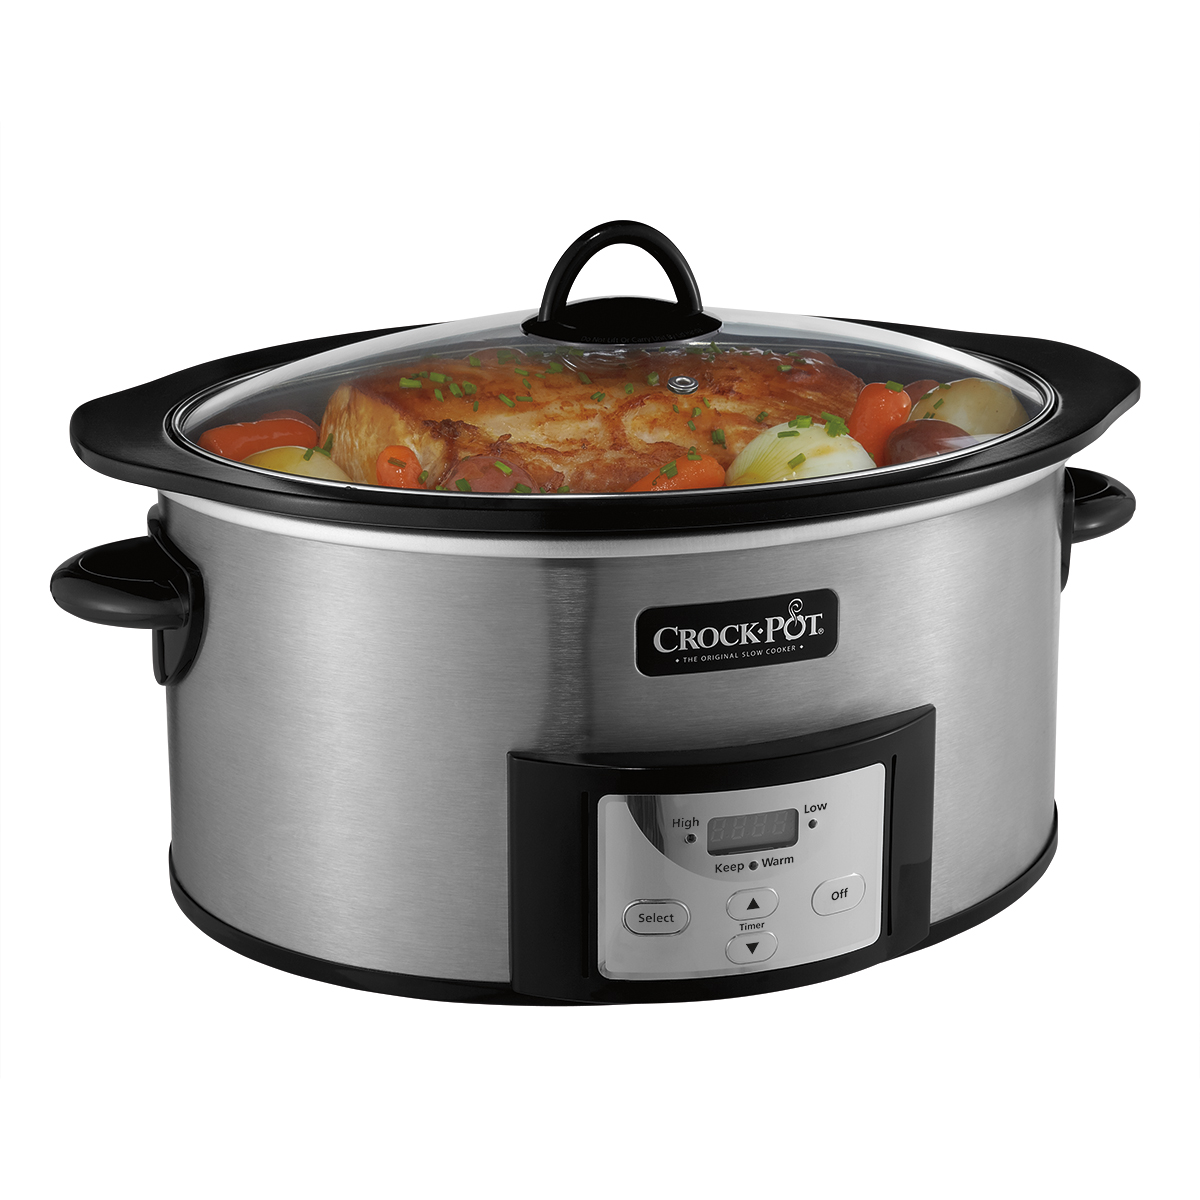 Crock-Pot Programmable Slow Cooker with Stovetop-Safe Cooking Pot, 6 Quart